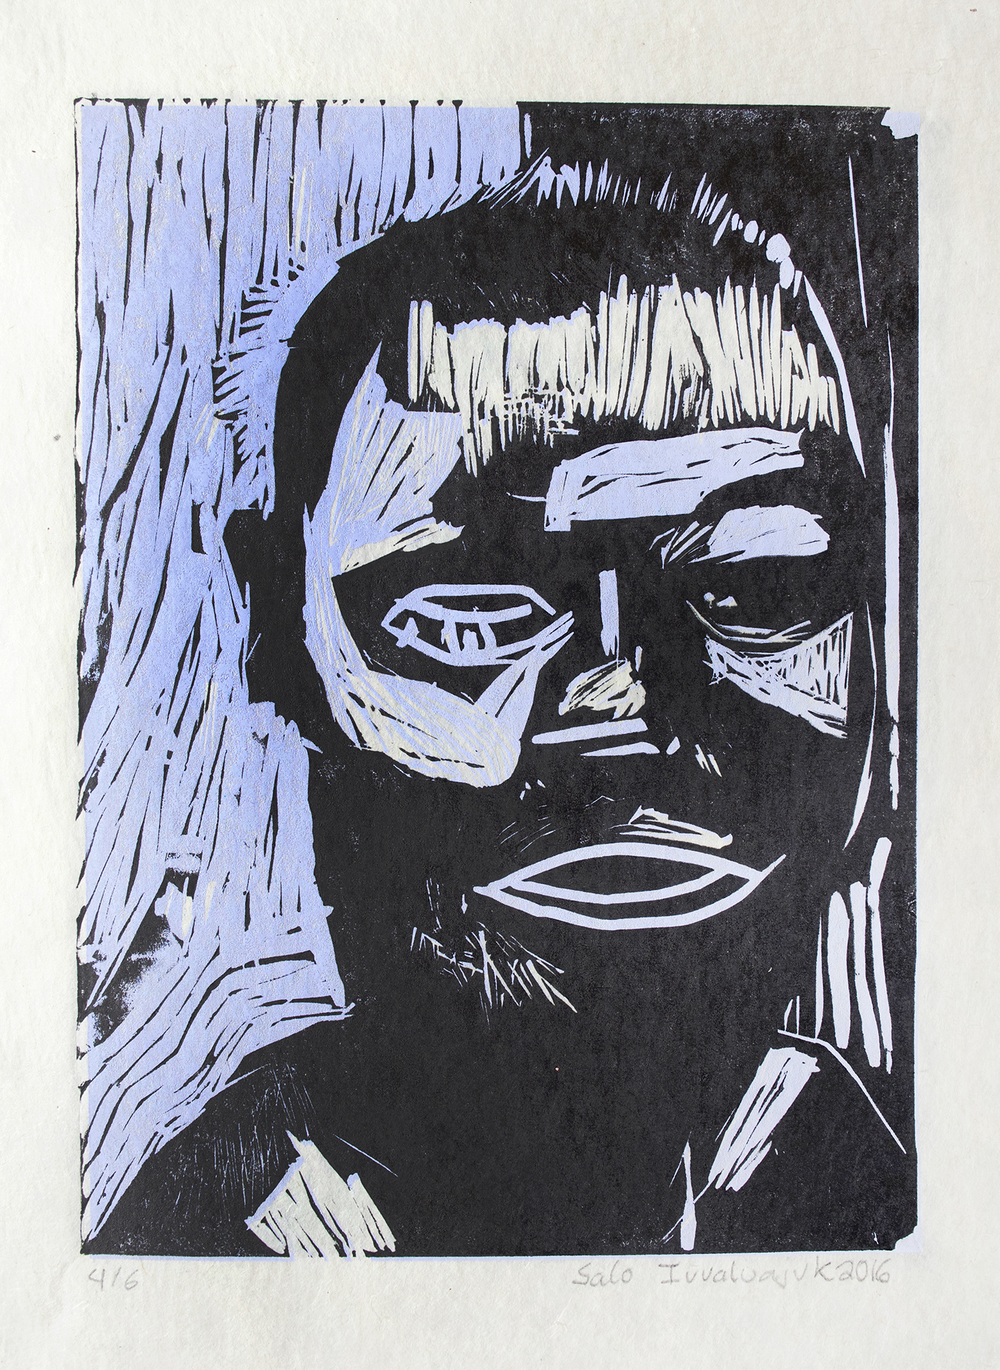 Uvanga: Self-Portrait   Salomonie Ivaluajuk  Two-Layer Linocut Print on Washi  15.5 x 21.5""